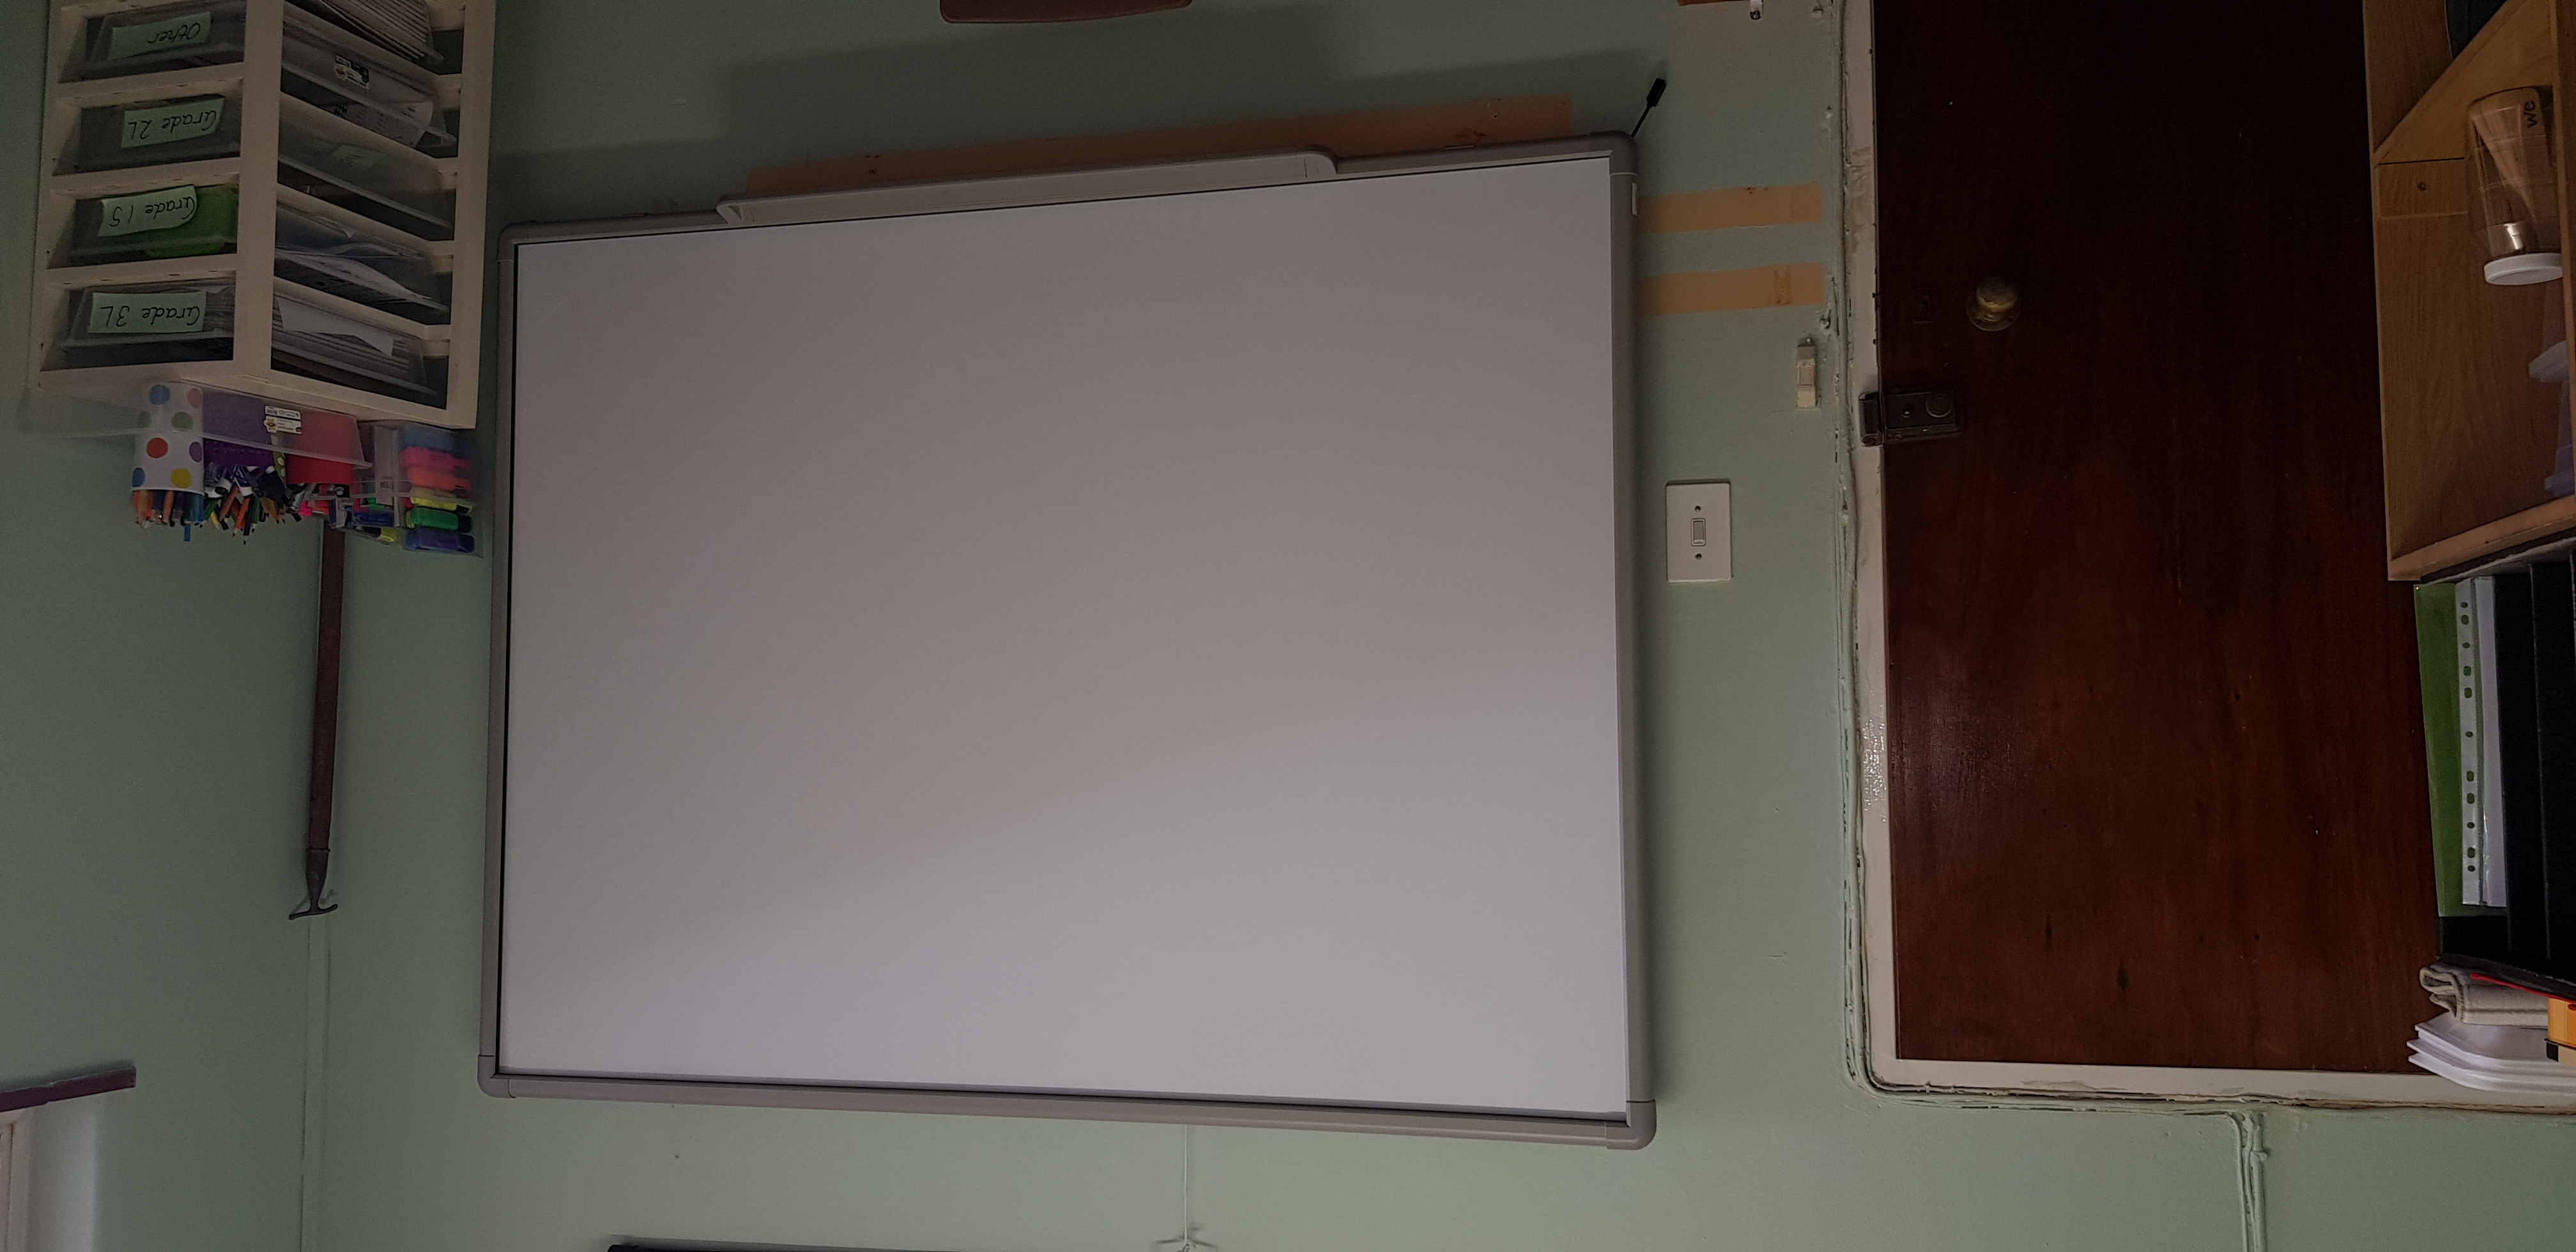 deftech interactive whiteboard(2)